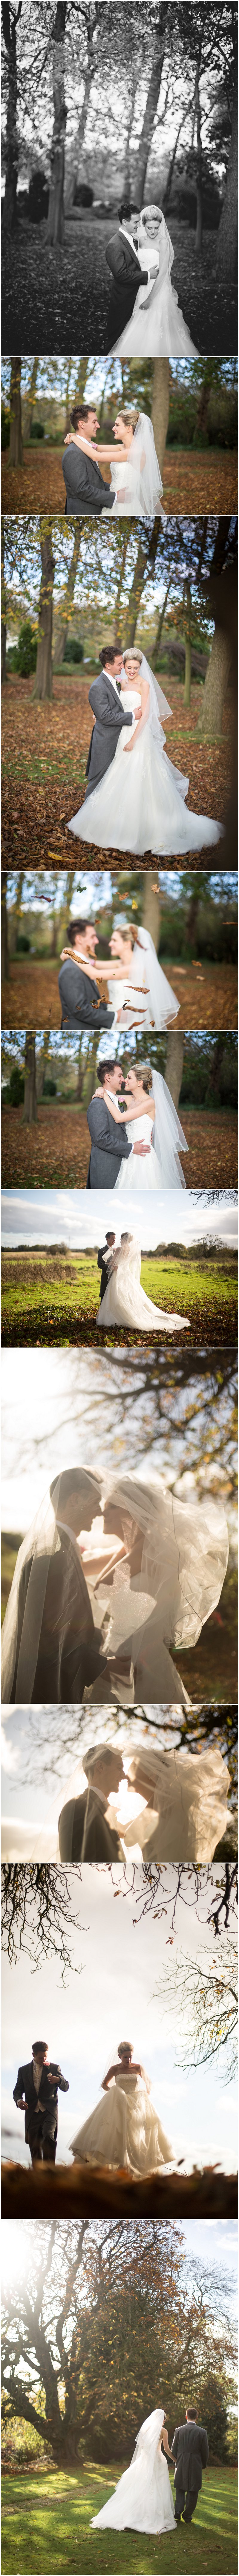 Beautiful Bride and groom in grounds of Crabwall Manor